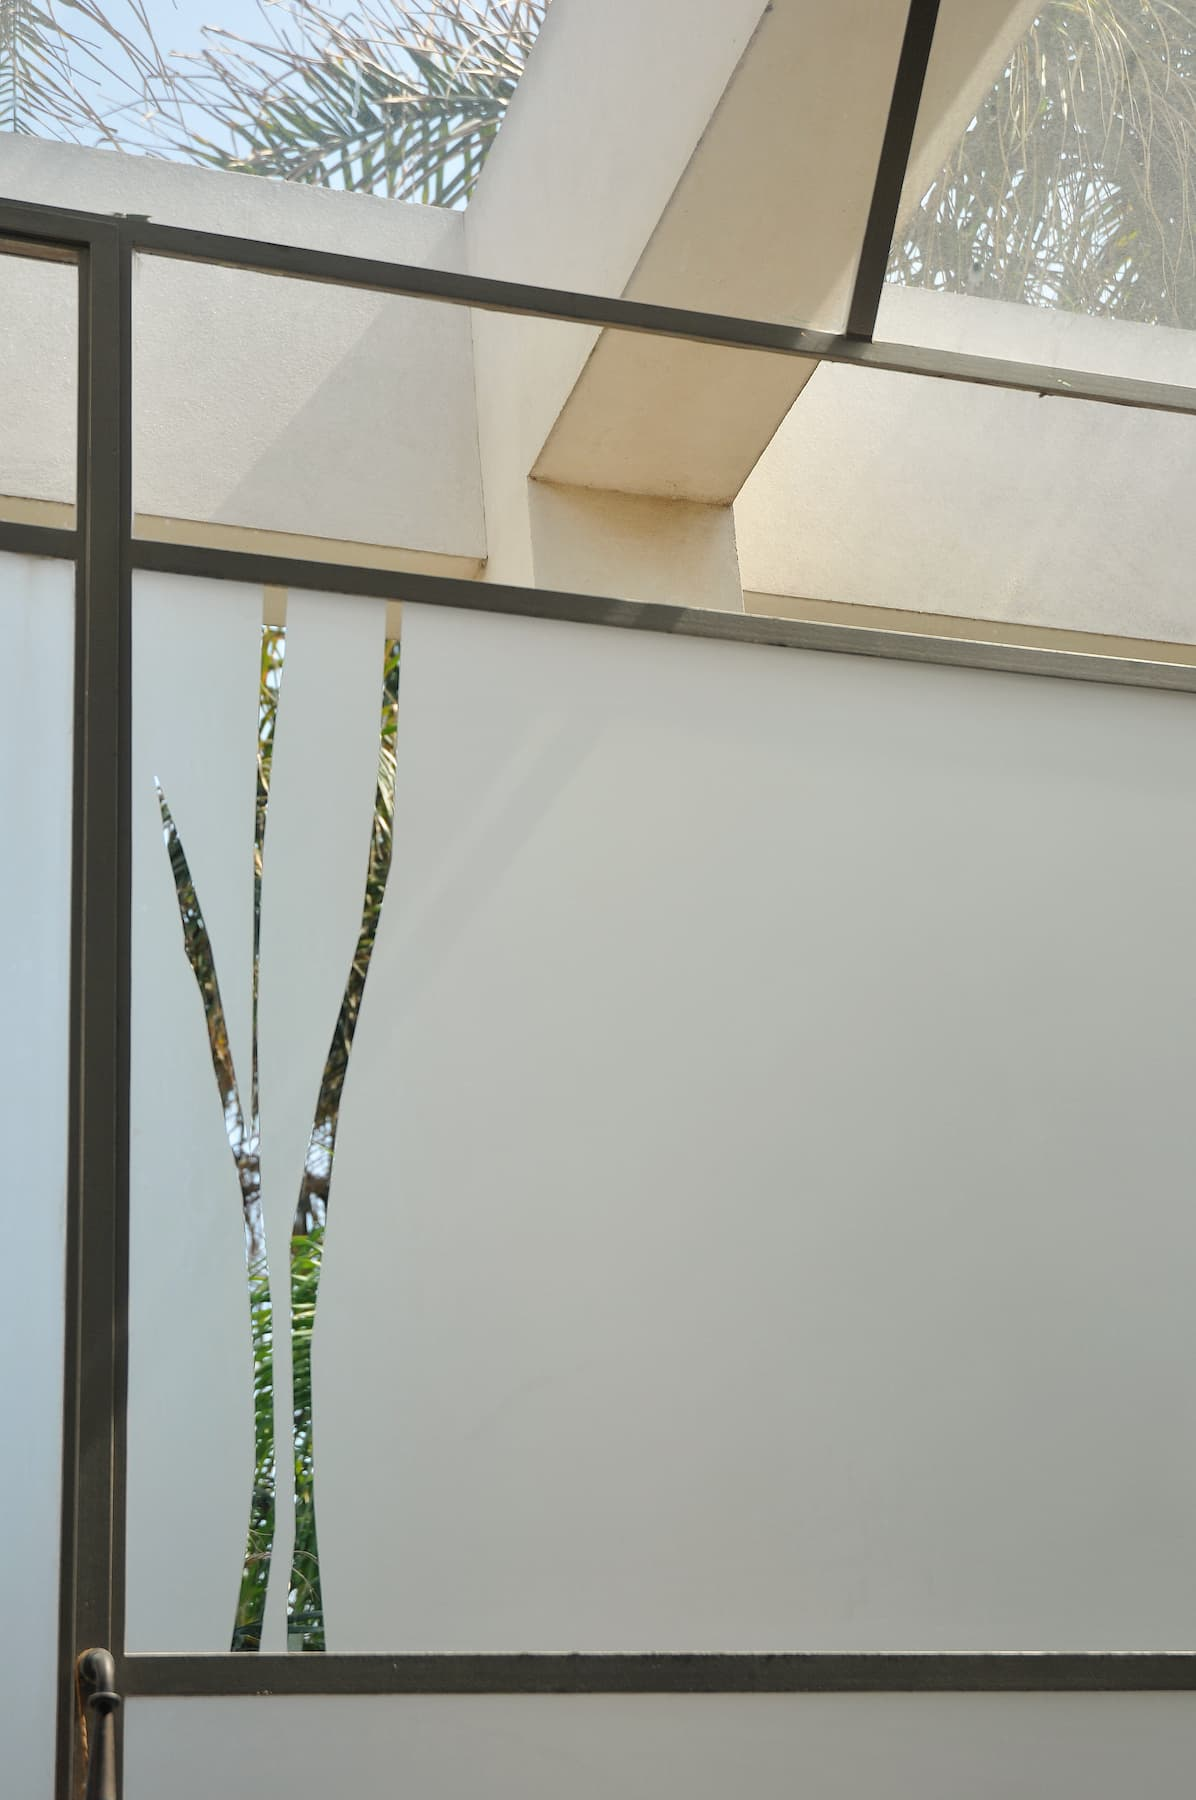 Example of smoked glass with transparent shapes of tall leaves